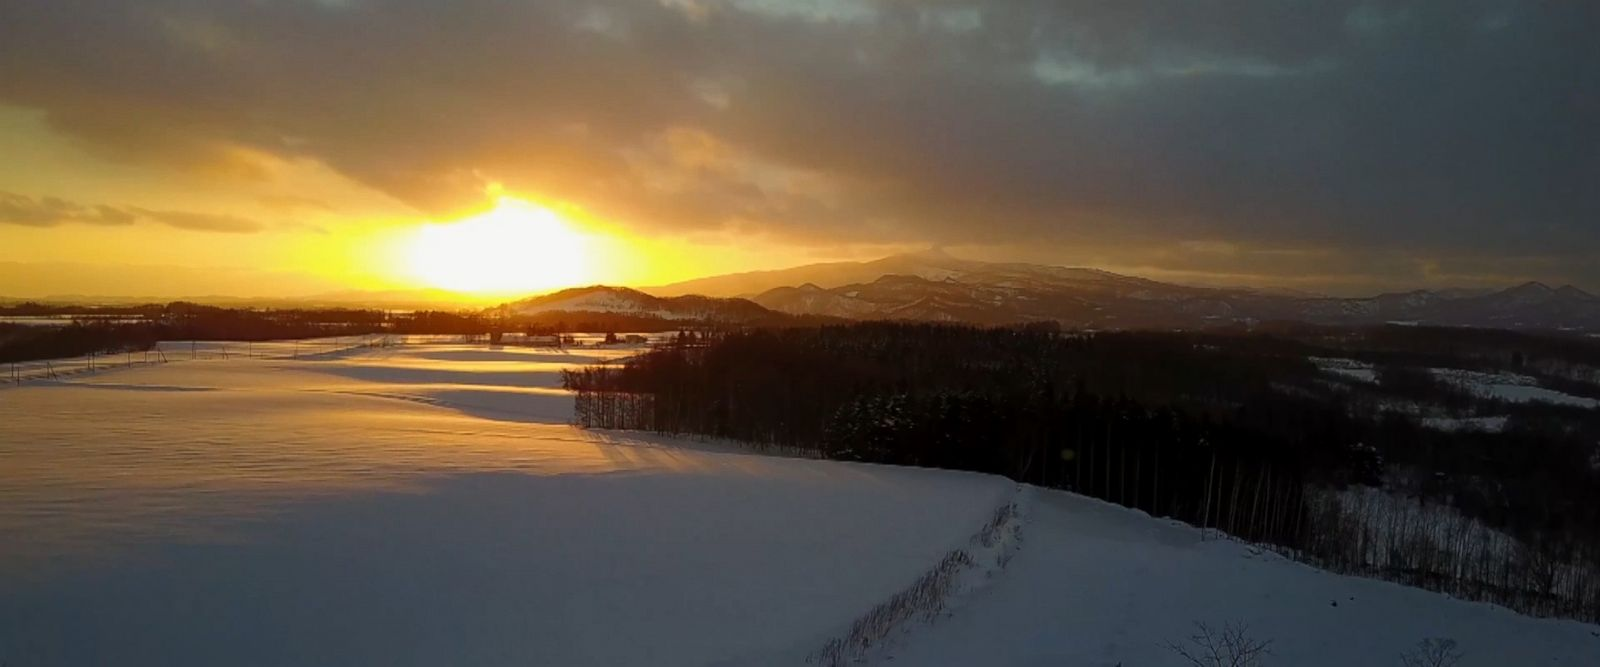 Drone captures breathtaking footage of the sun setting over a stunning snowy landscape in Hokkaido, Japan.